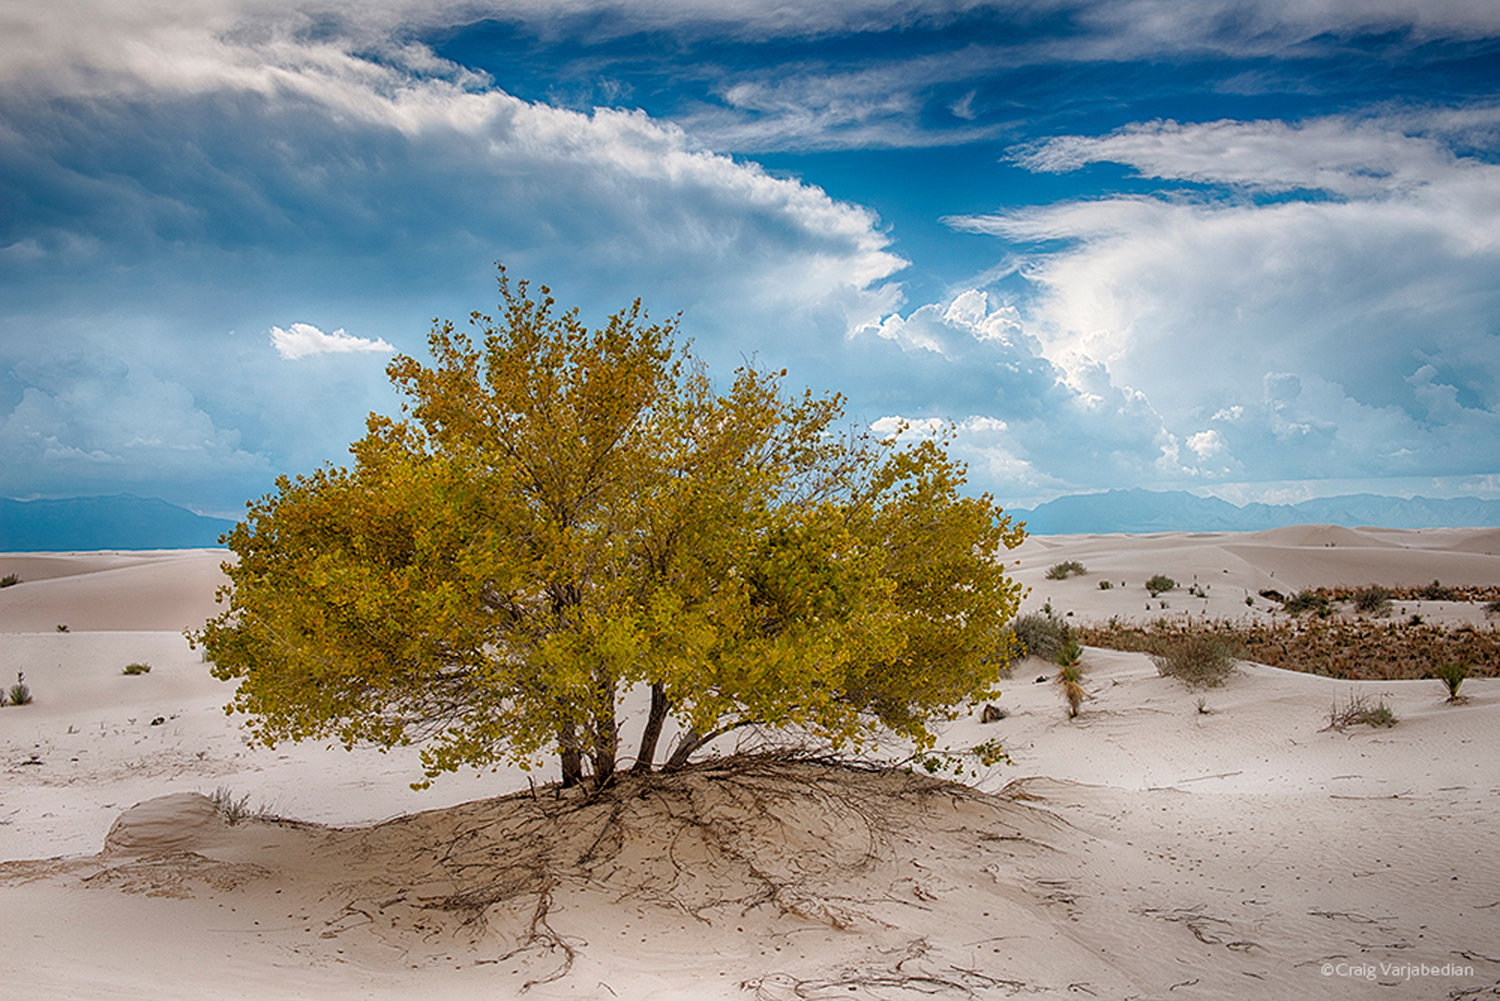 Cottonwood-Fall-White-Sands-Craig-Varjabedian.jpg